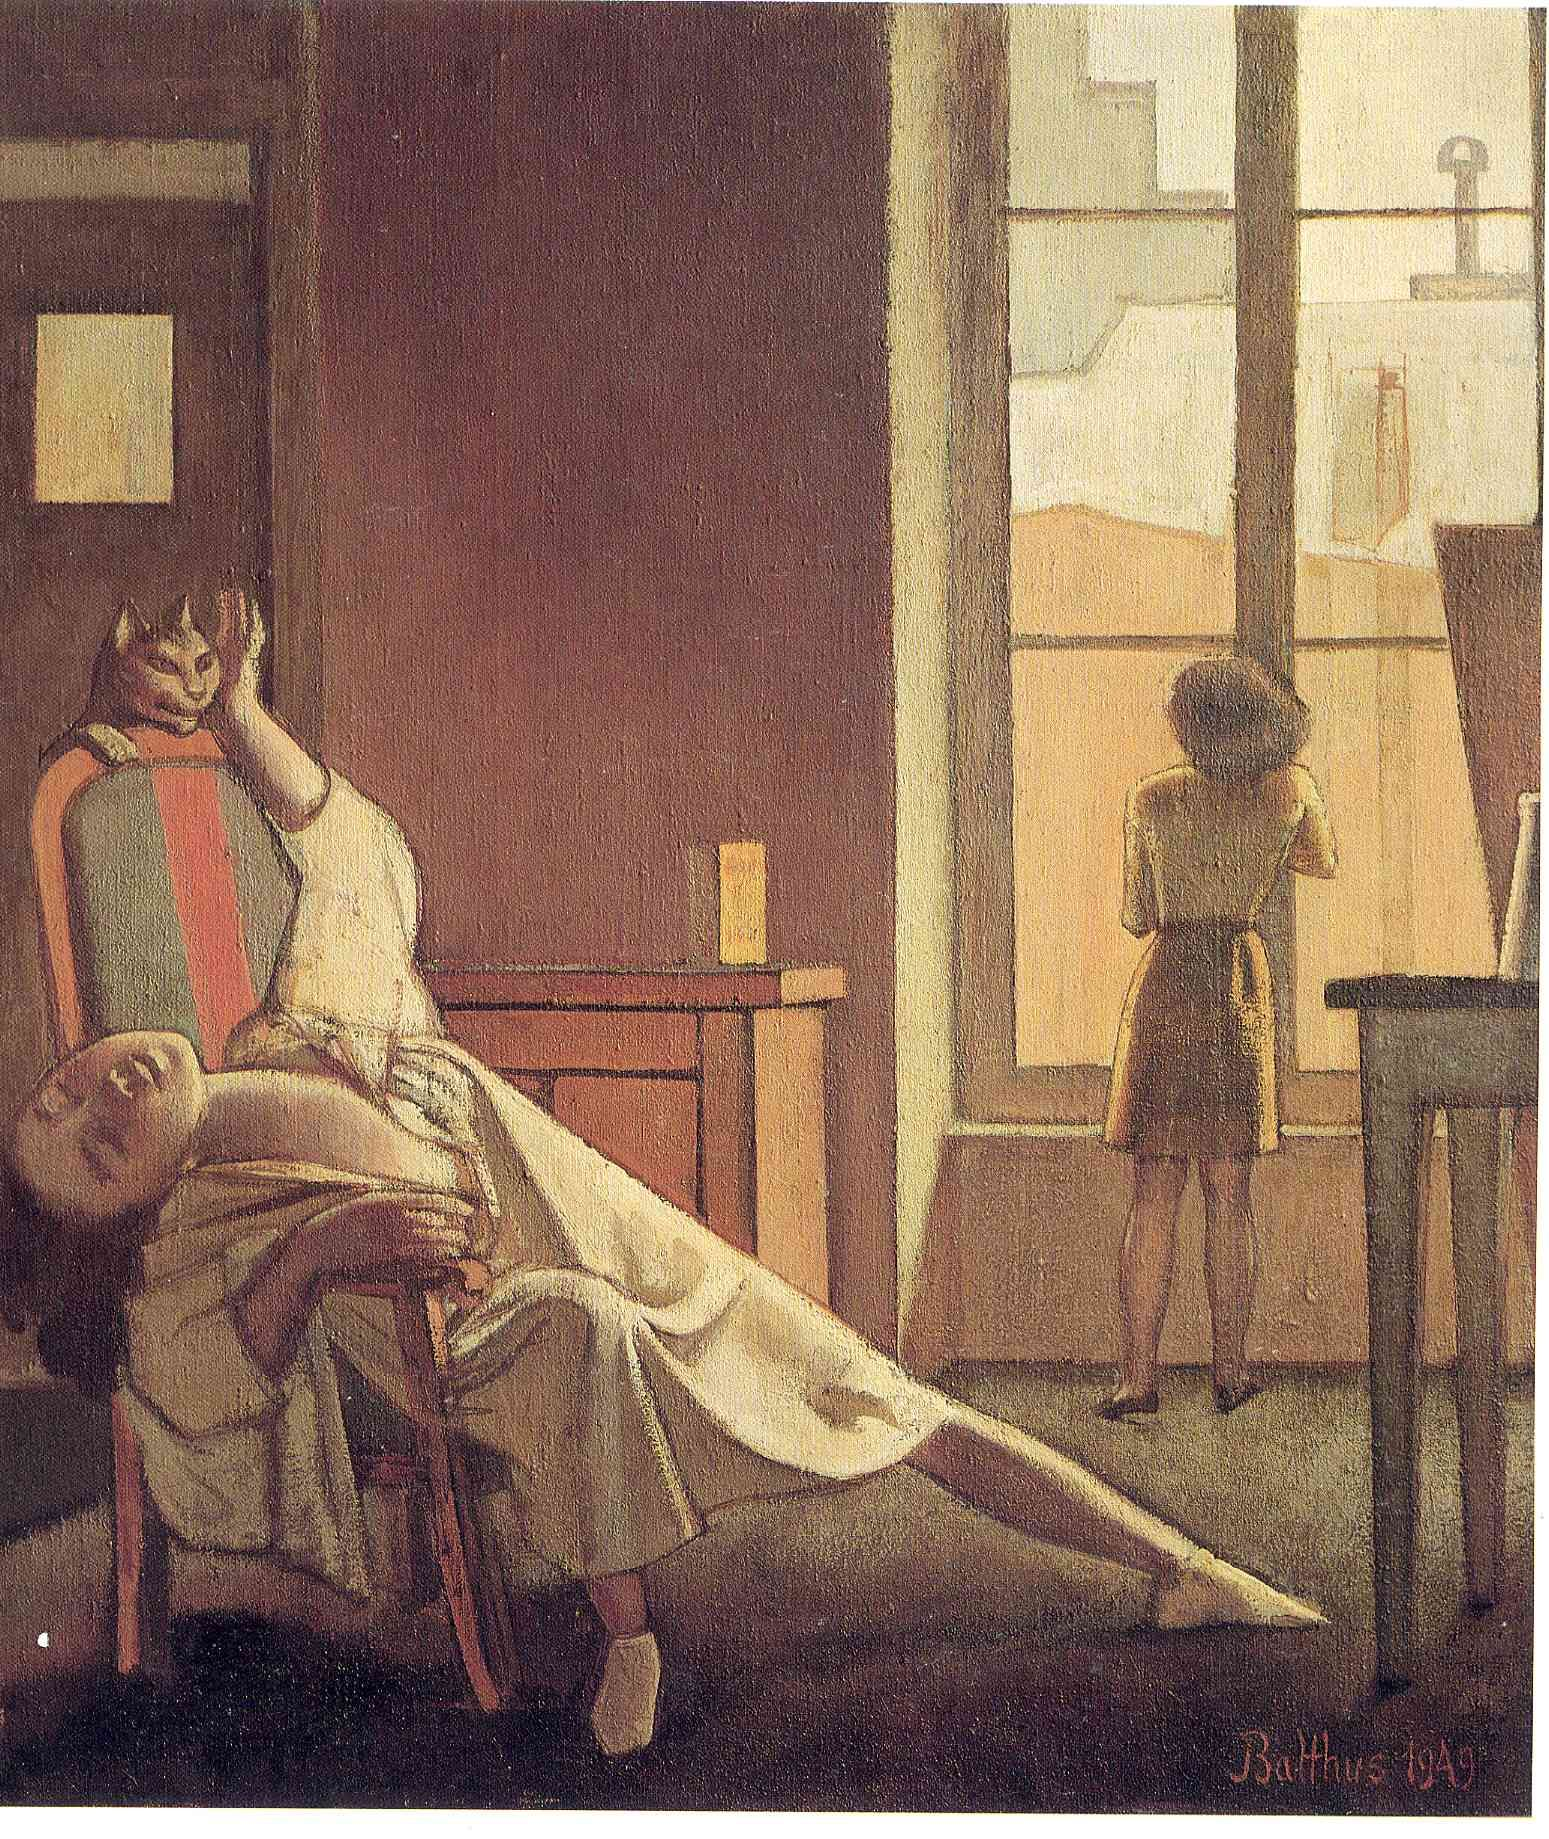 Balthus Balthasar Klossowski de Rola (Artista polaco francés nacido en Suiza, 1908-2001).  The Week with Four Thursdays.